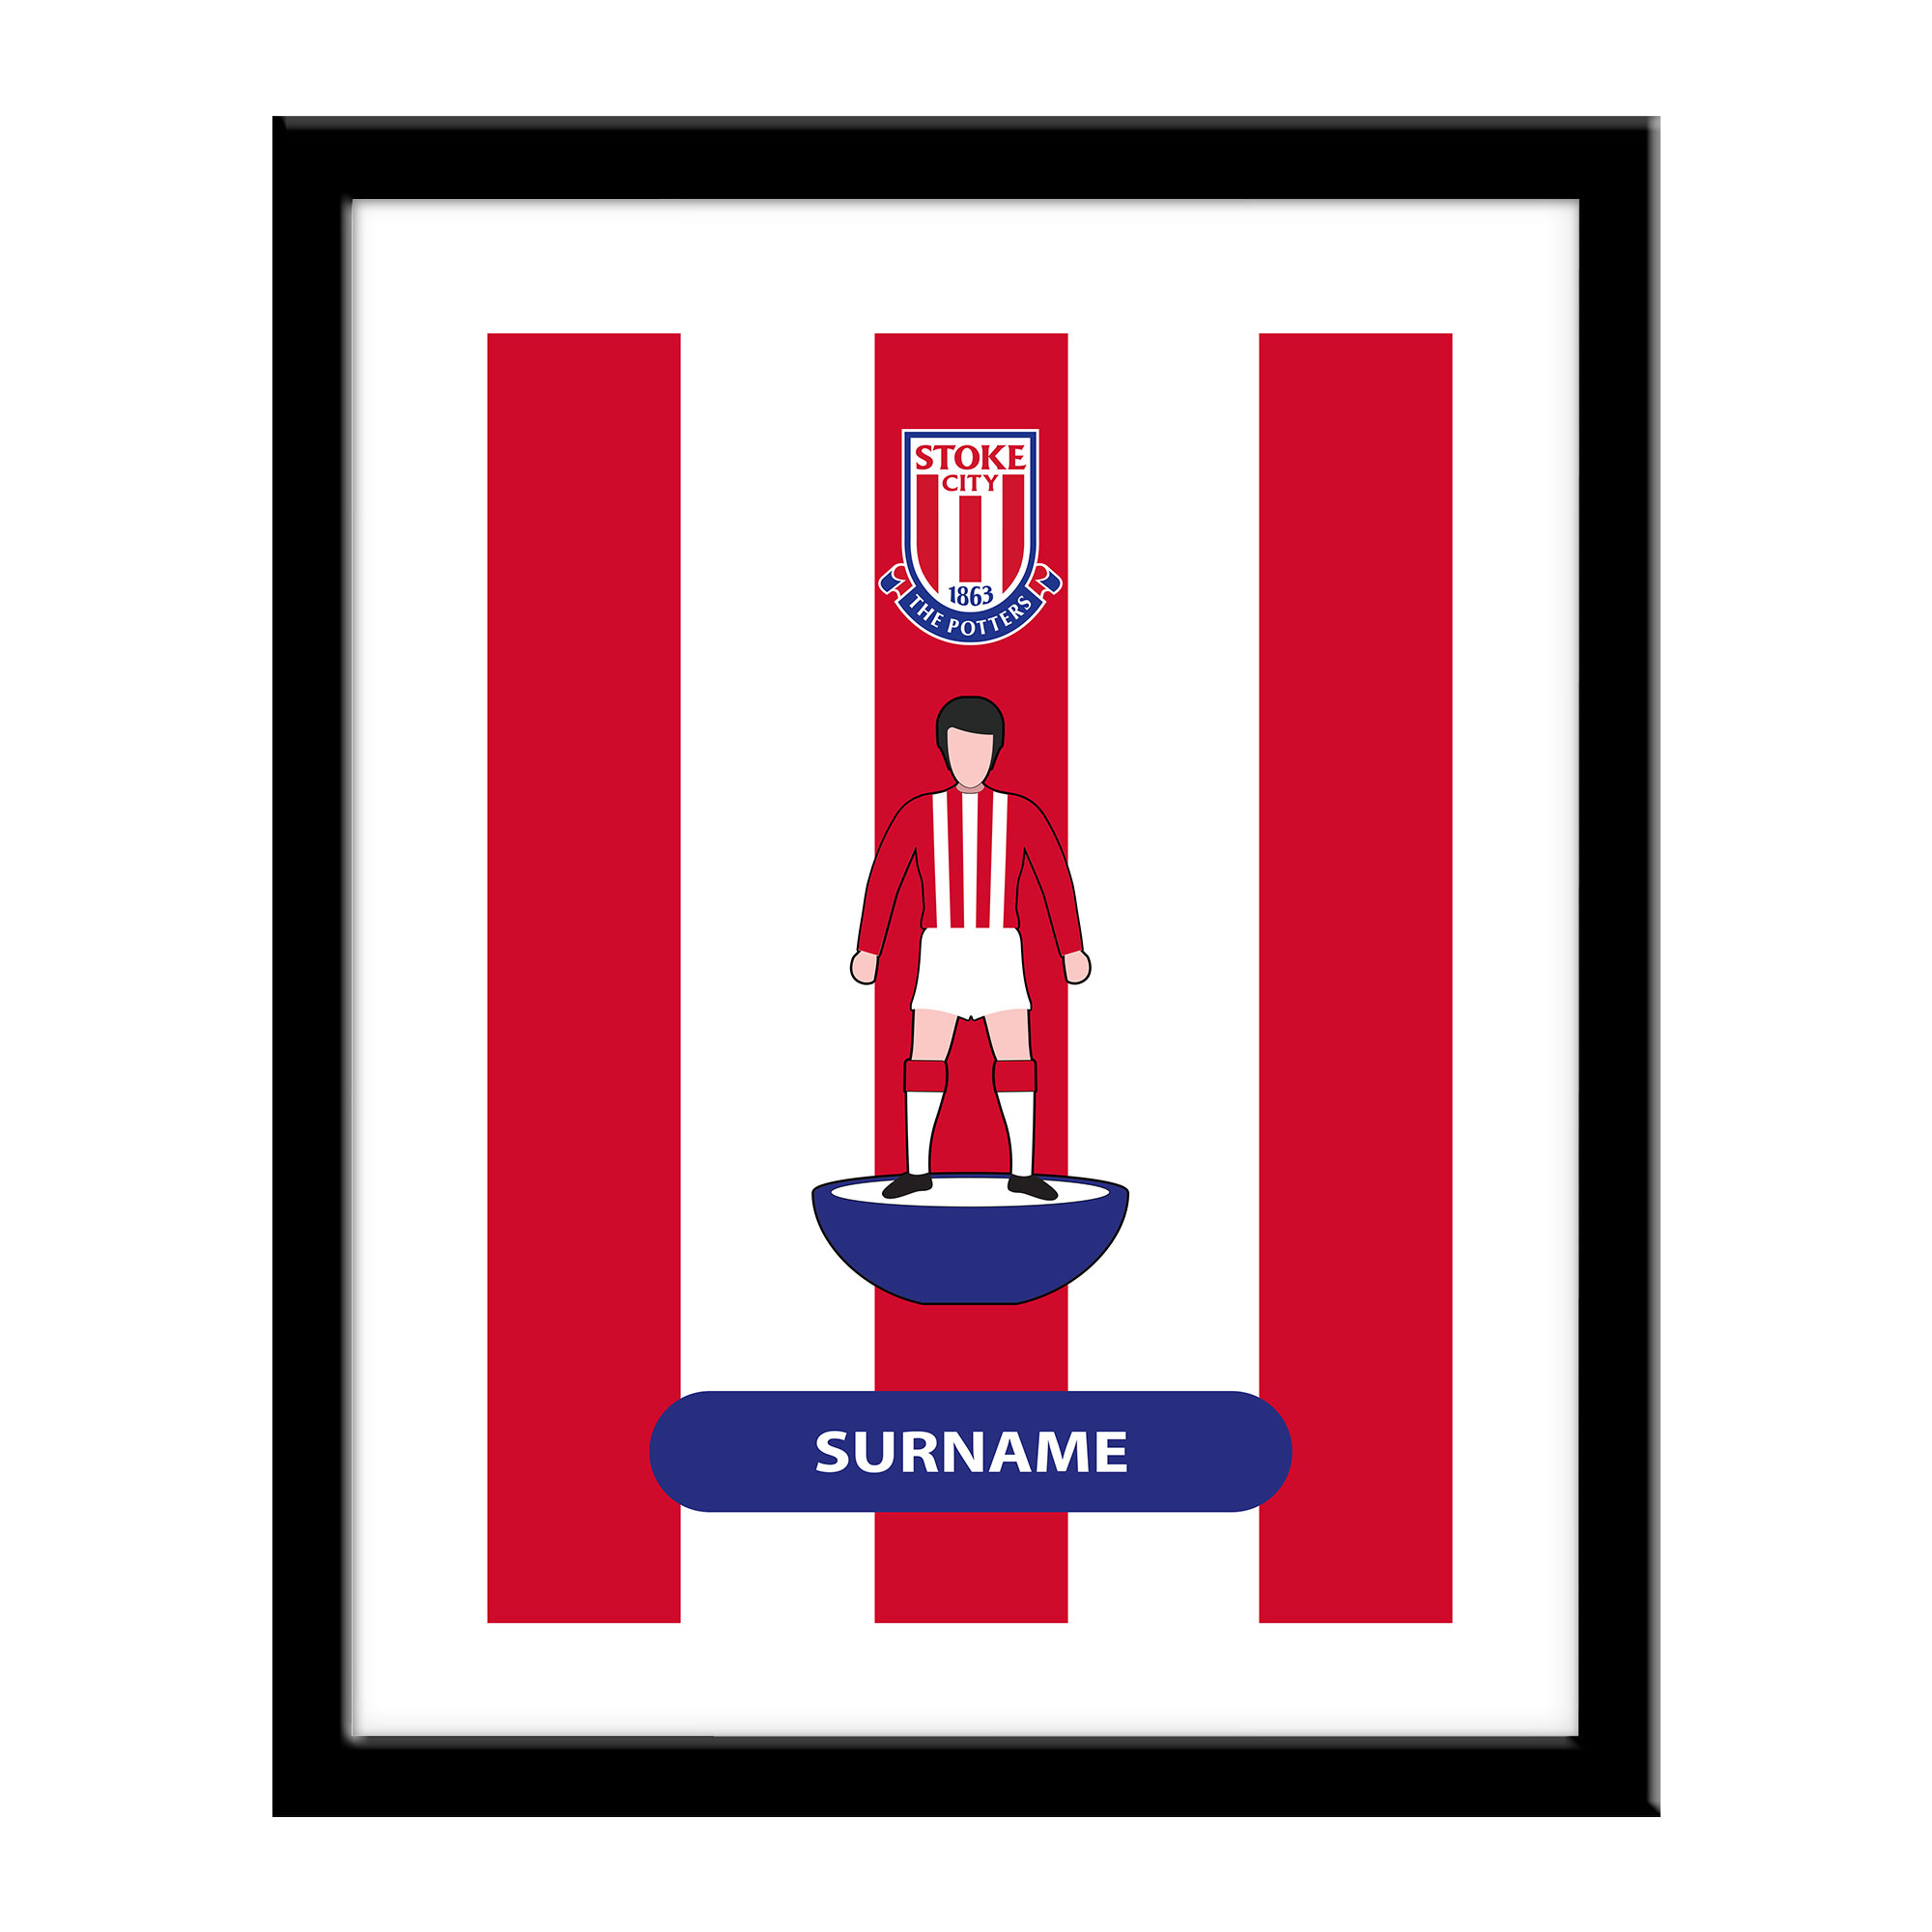 Stoke City FC Player Figure Print